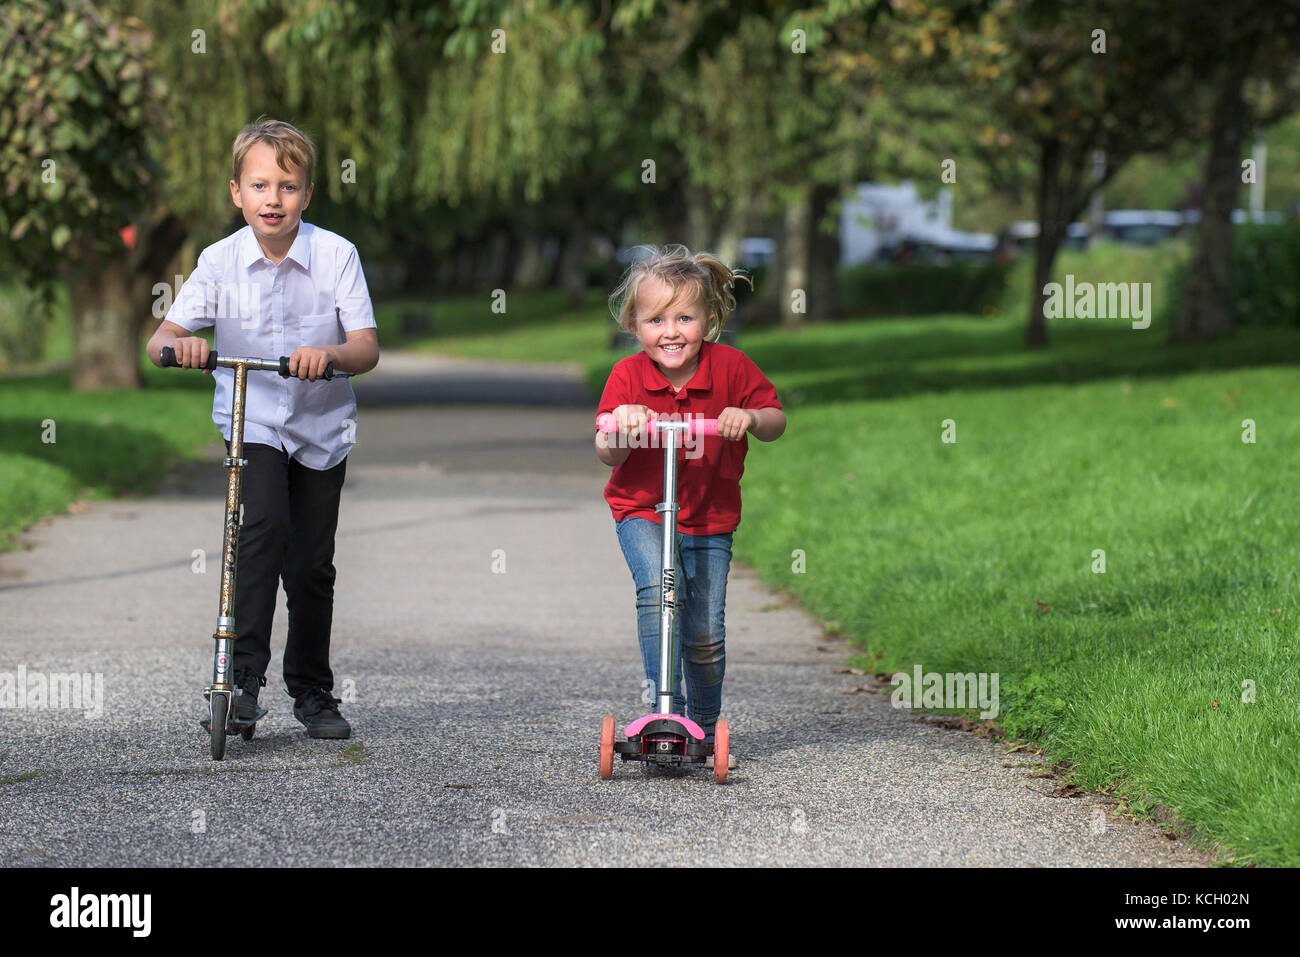 Children riding their scooters - a young boy and his young sister having fun racing along a path on their scooters. - Stock Image